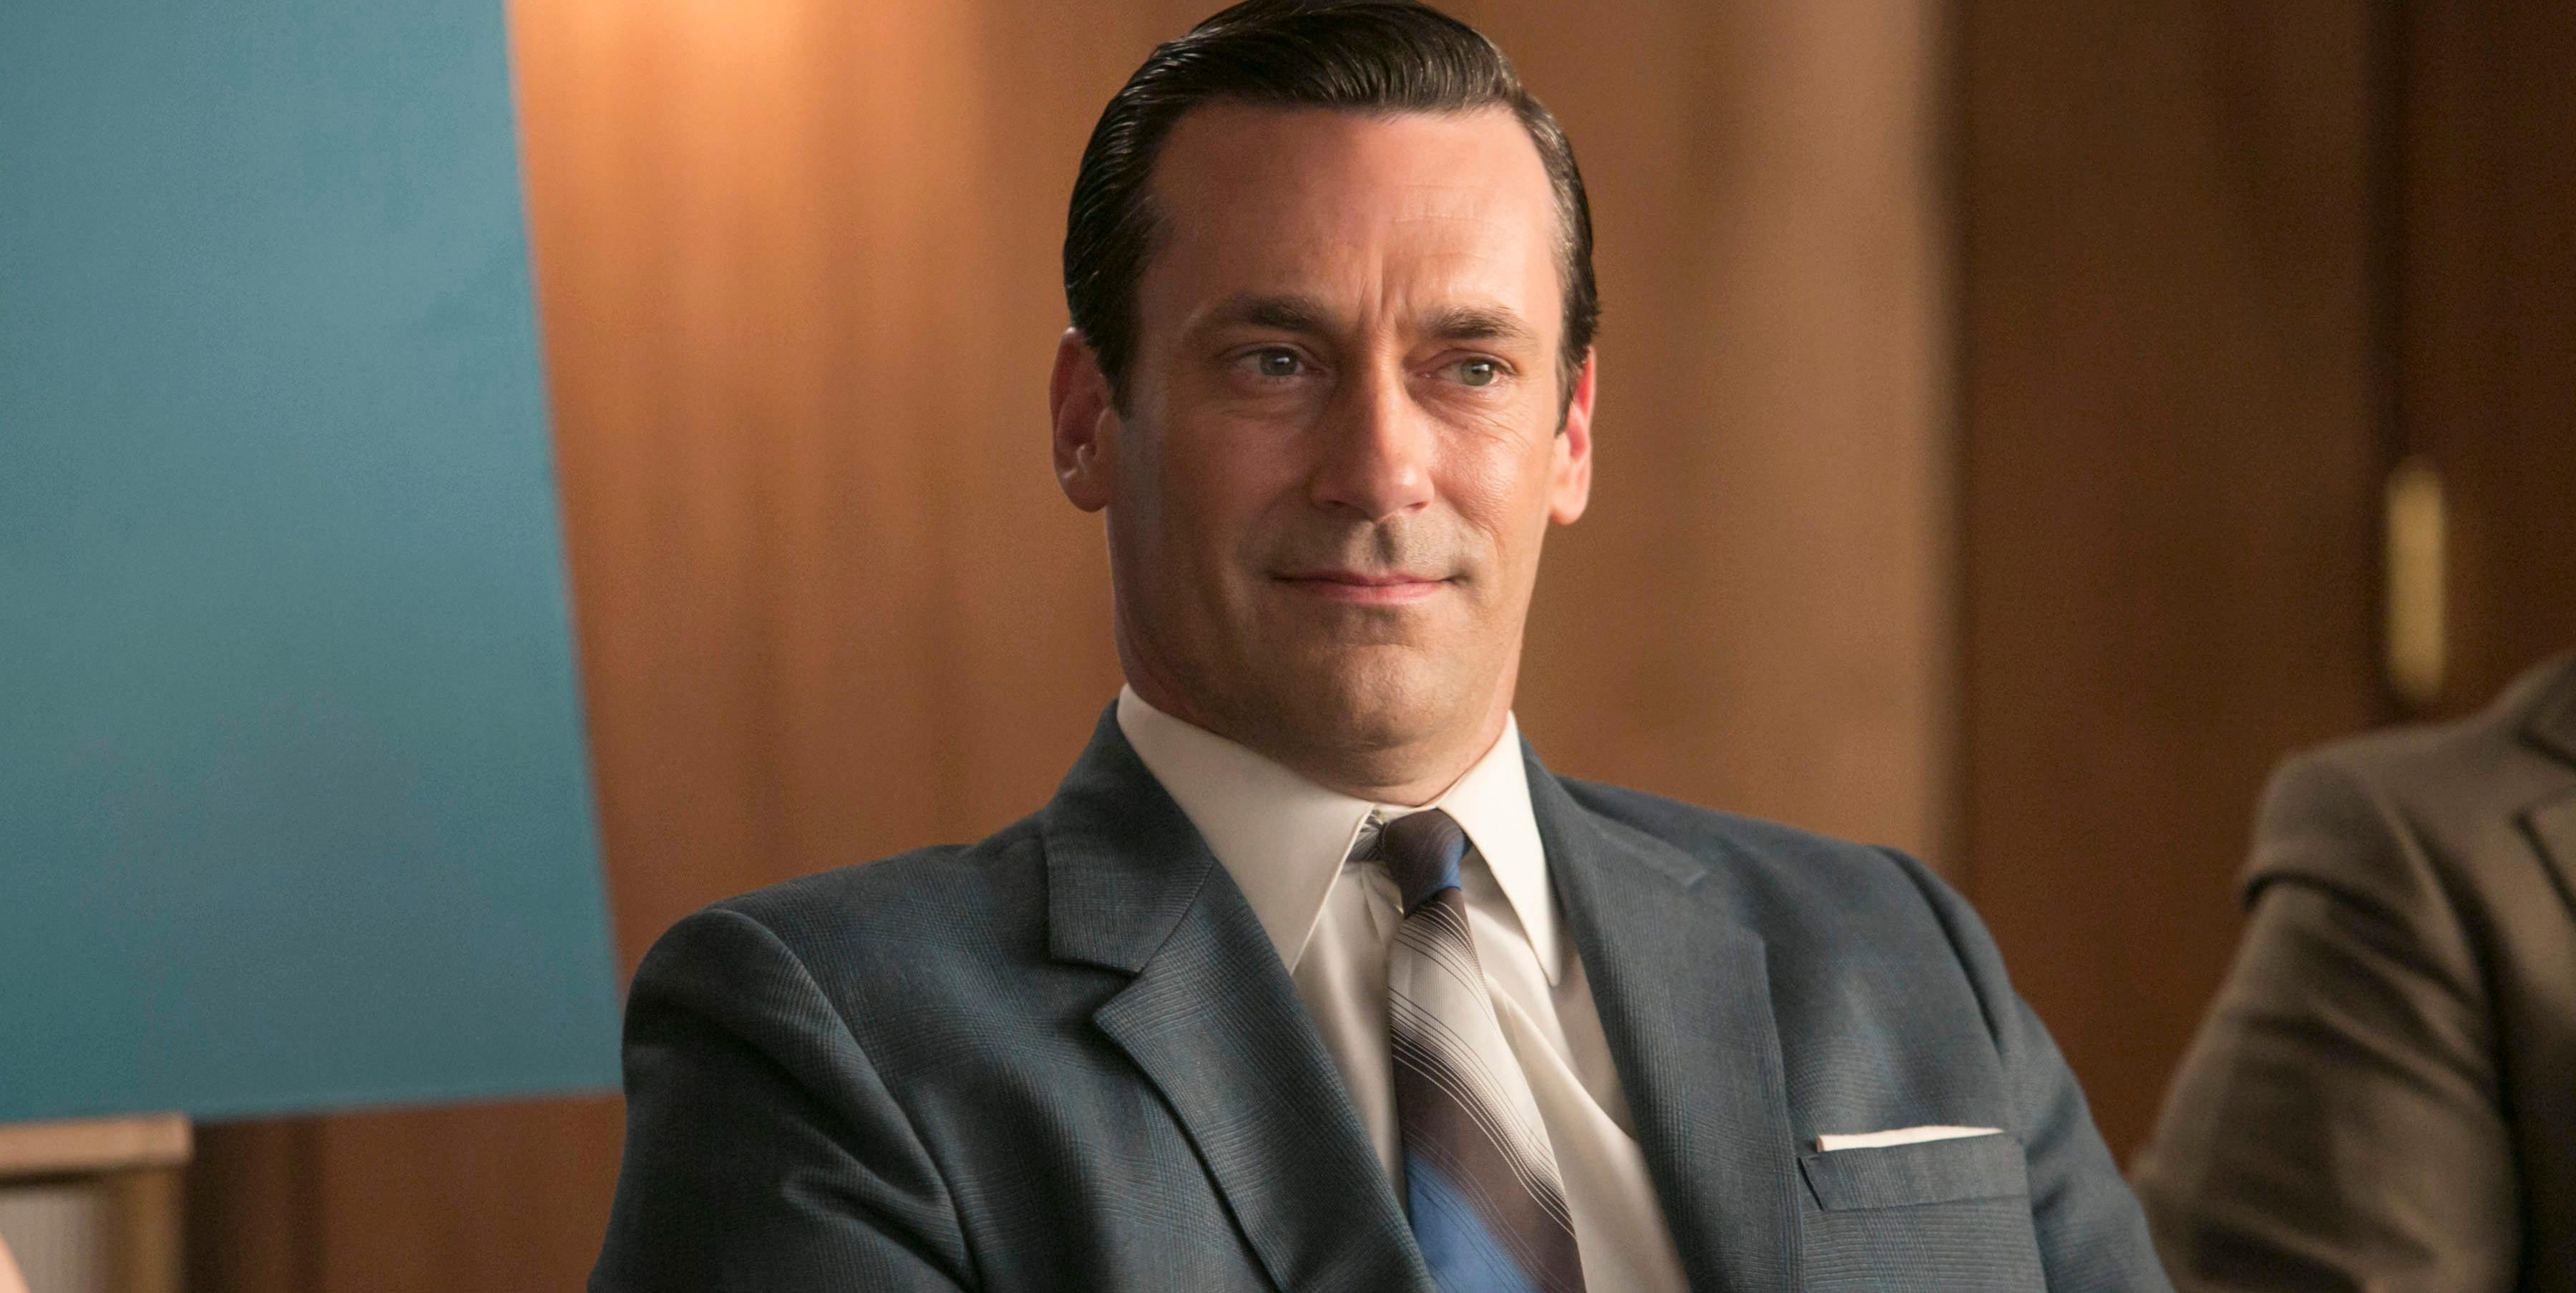 Don Draper from Mad Men